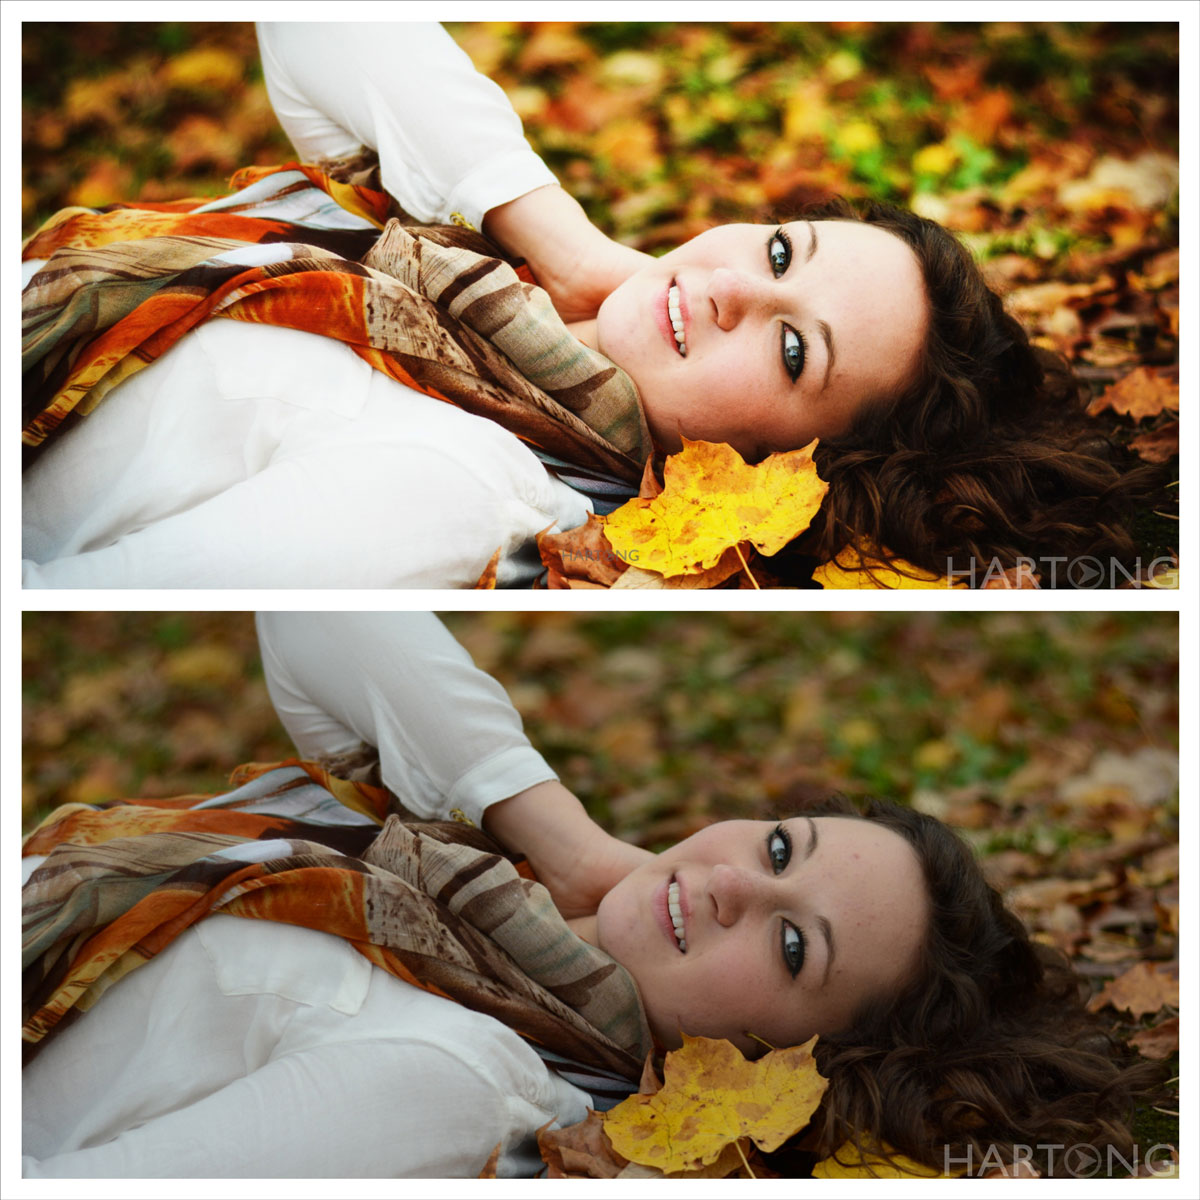 retouch-photoshop-hartong-before-after-senior